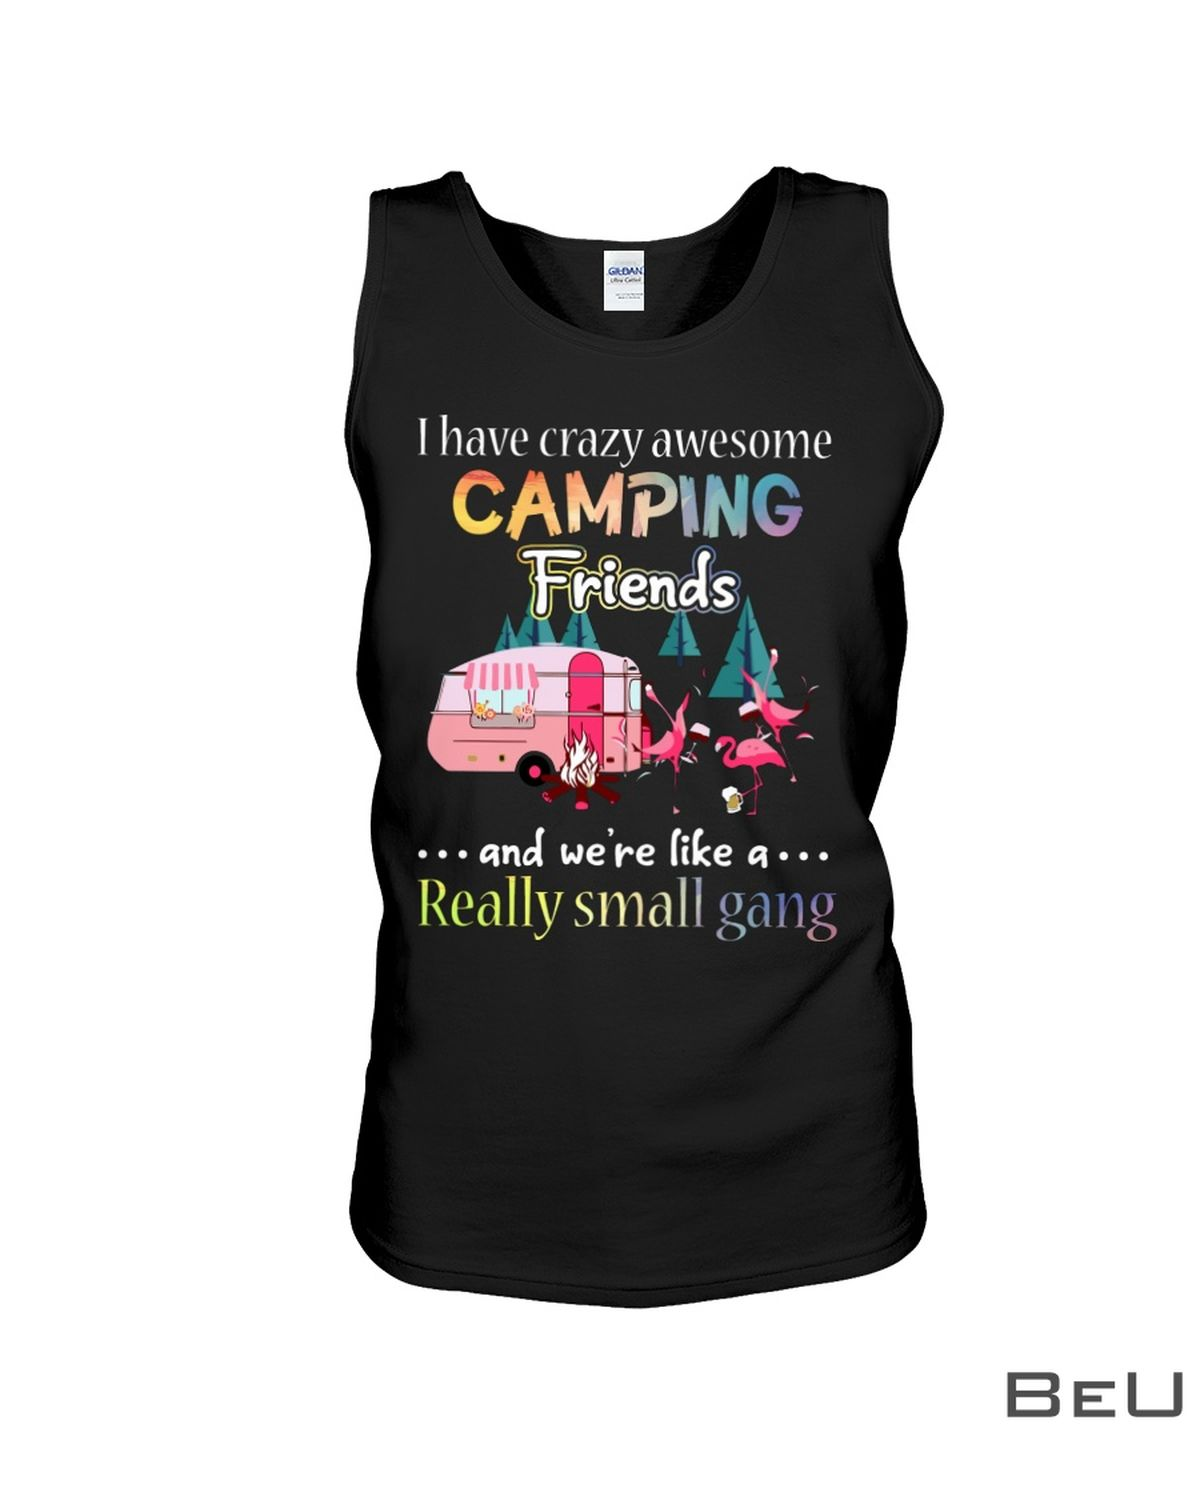 I Have Crazy Awesome Camping Friends And We're Like A Really Small Gang Shirtc